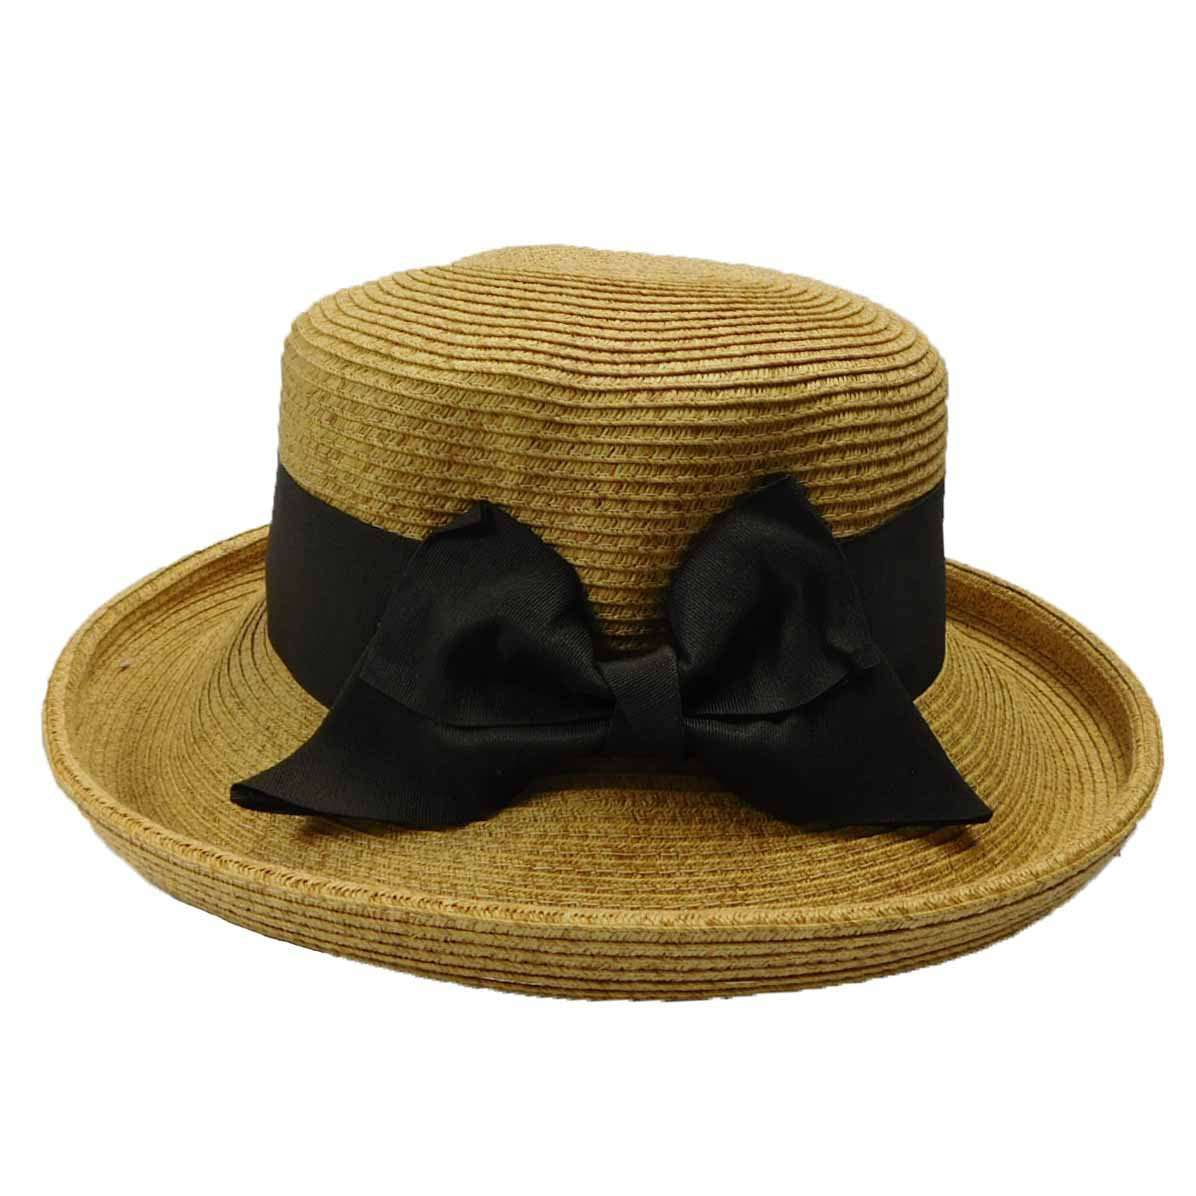 Up Turned Brim Hat with Ribbon Bow - SetarTrading Hats